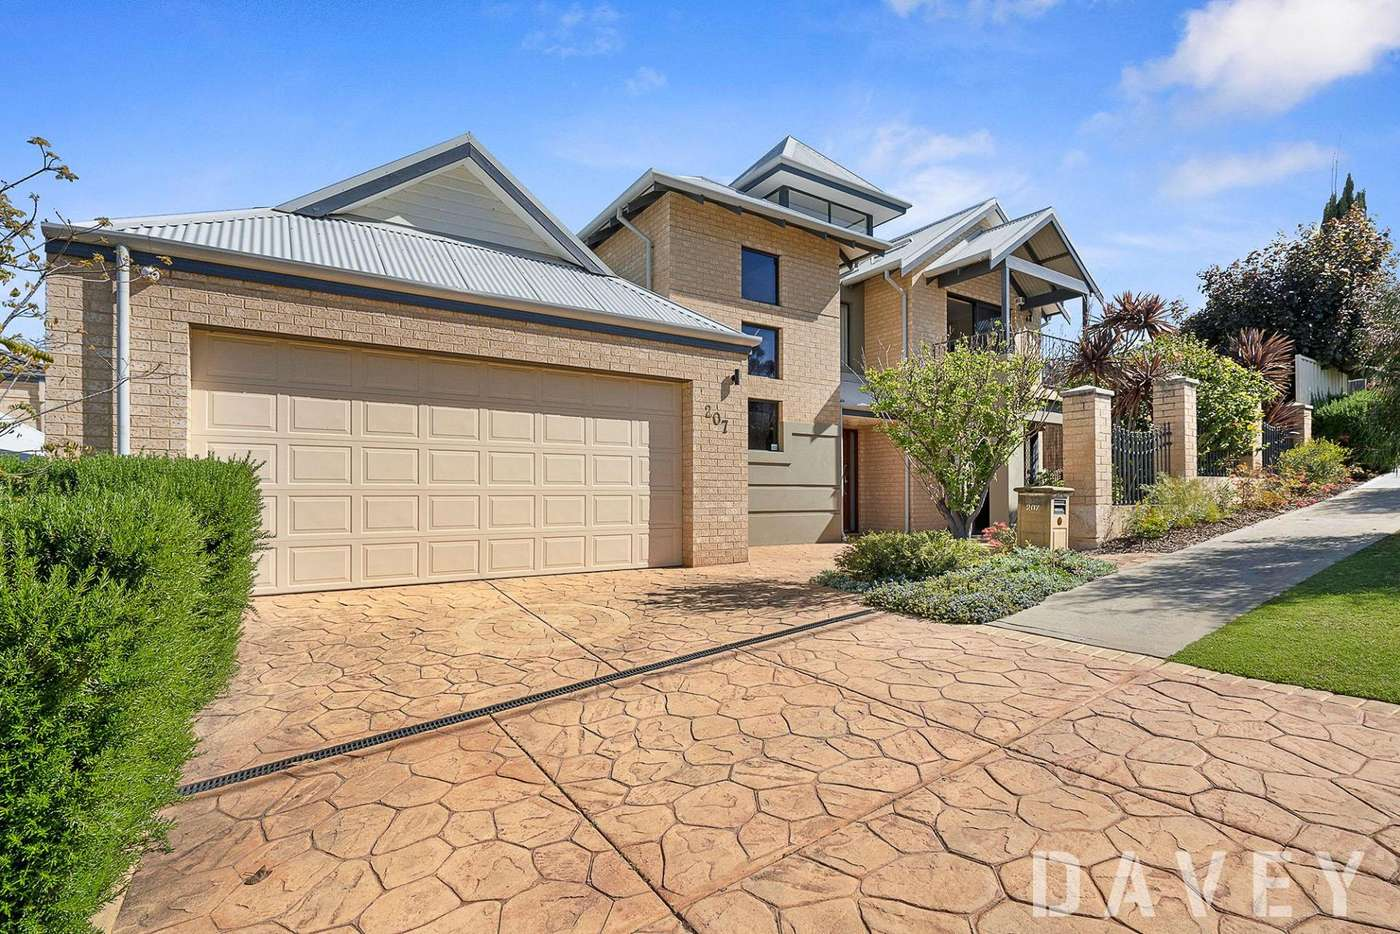 Main view of Homely house listing, 207 Newborough Street, Doubleview WA 6018